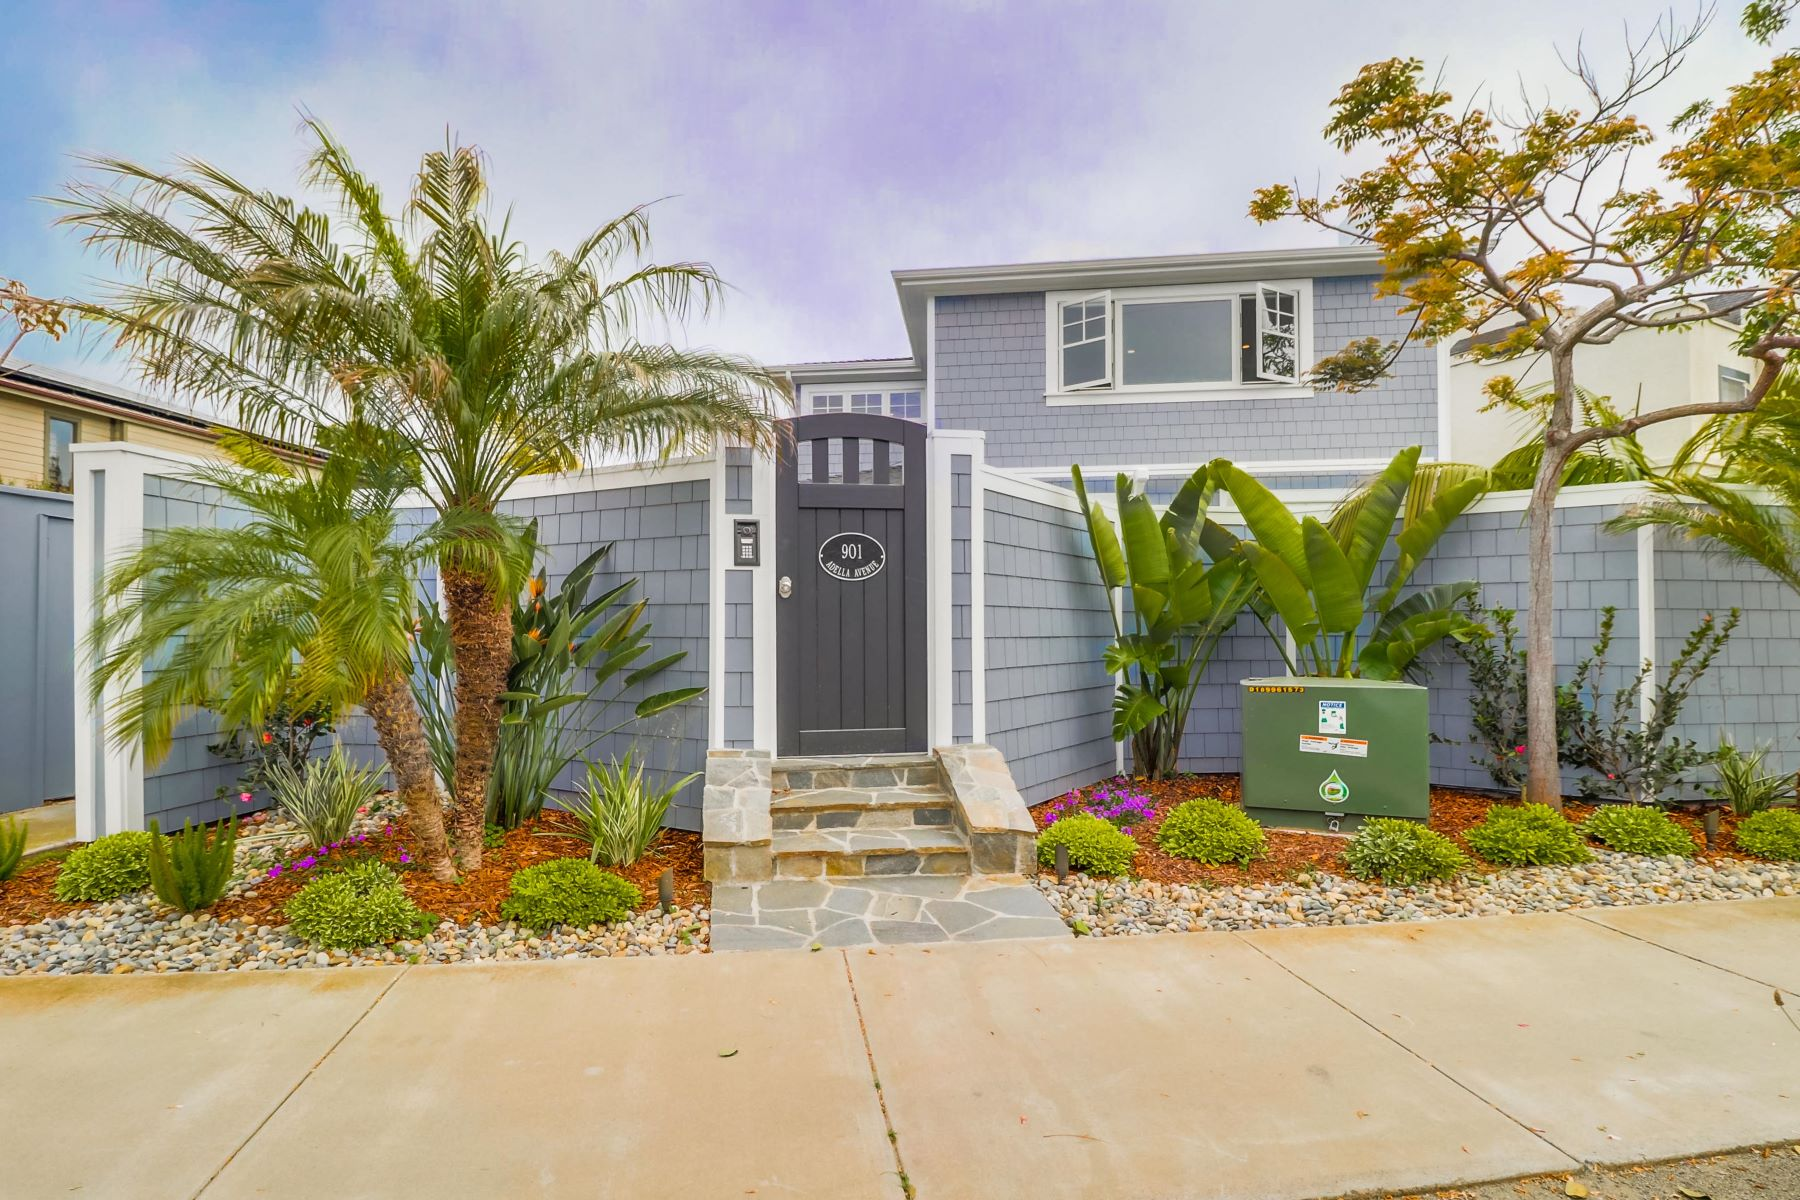 Single Family Homes for Active at 901 Adella Avenue Coronado, California 92118 United States